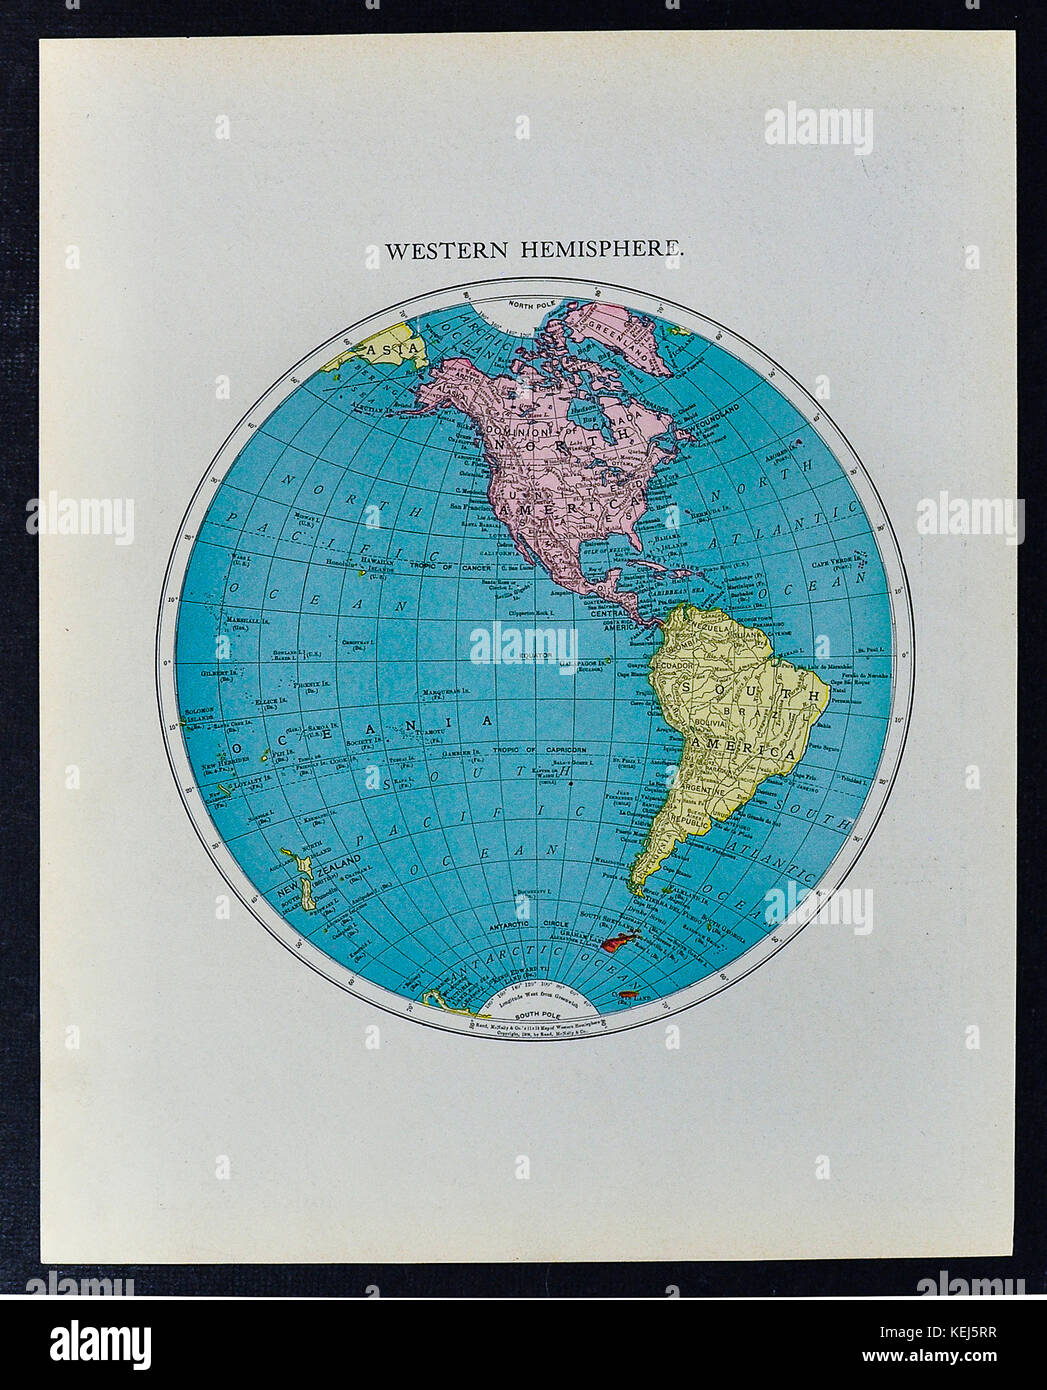 Mcnally Antique World Western Hemisphere Map 1911 Showing North America And South America Stock Image